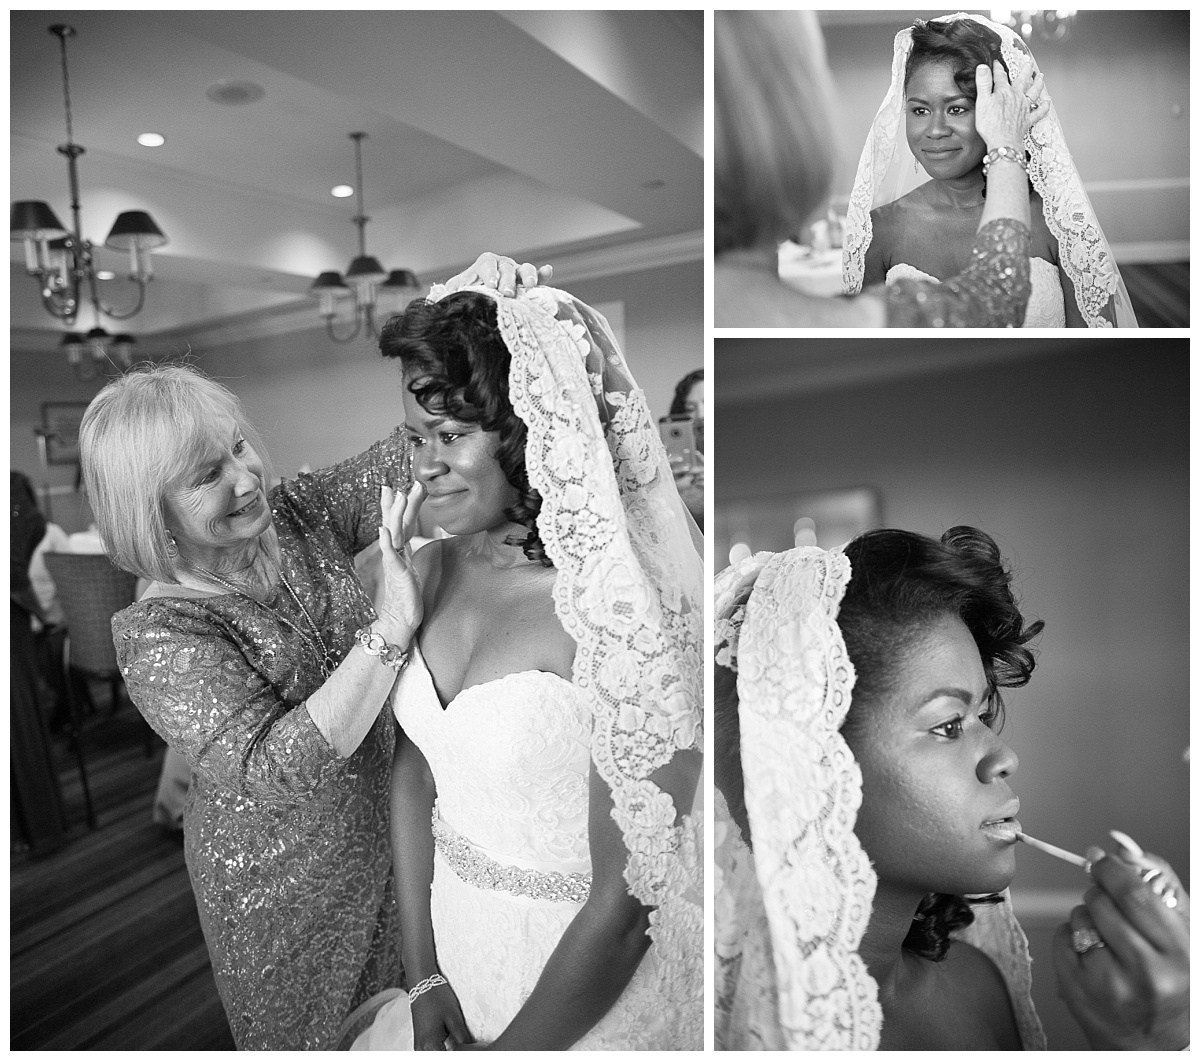 Bride getting ready in B&W